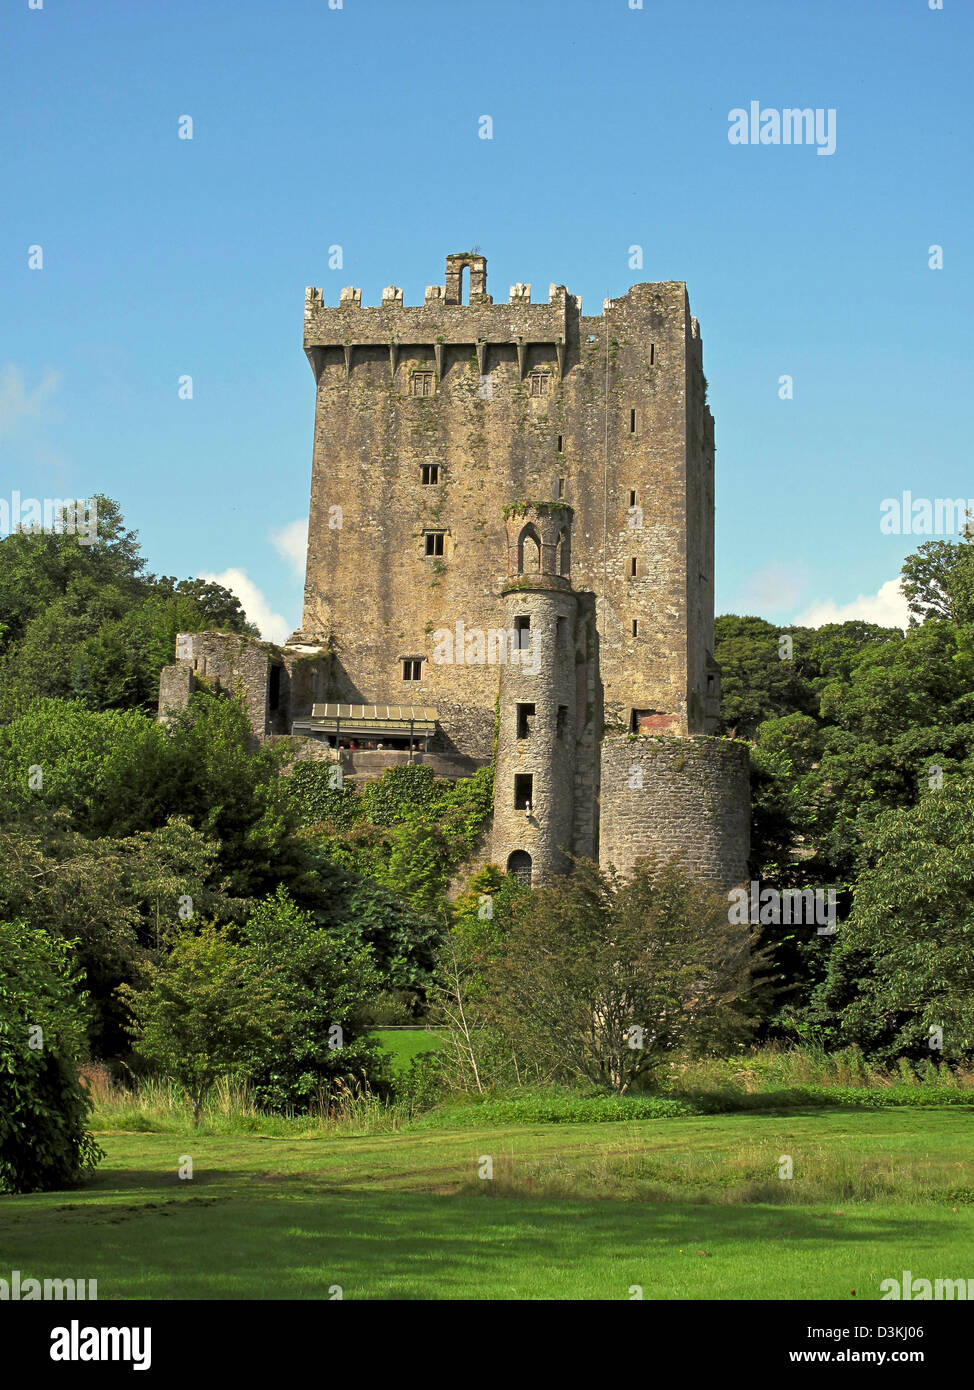 The Blarney Castle in County Cork, Eire - Stock Image